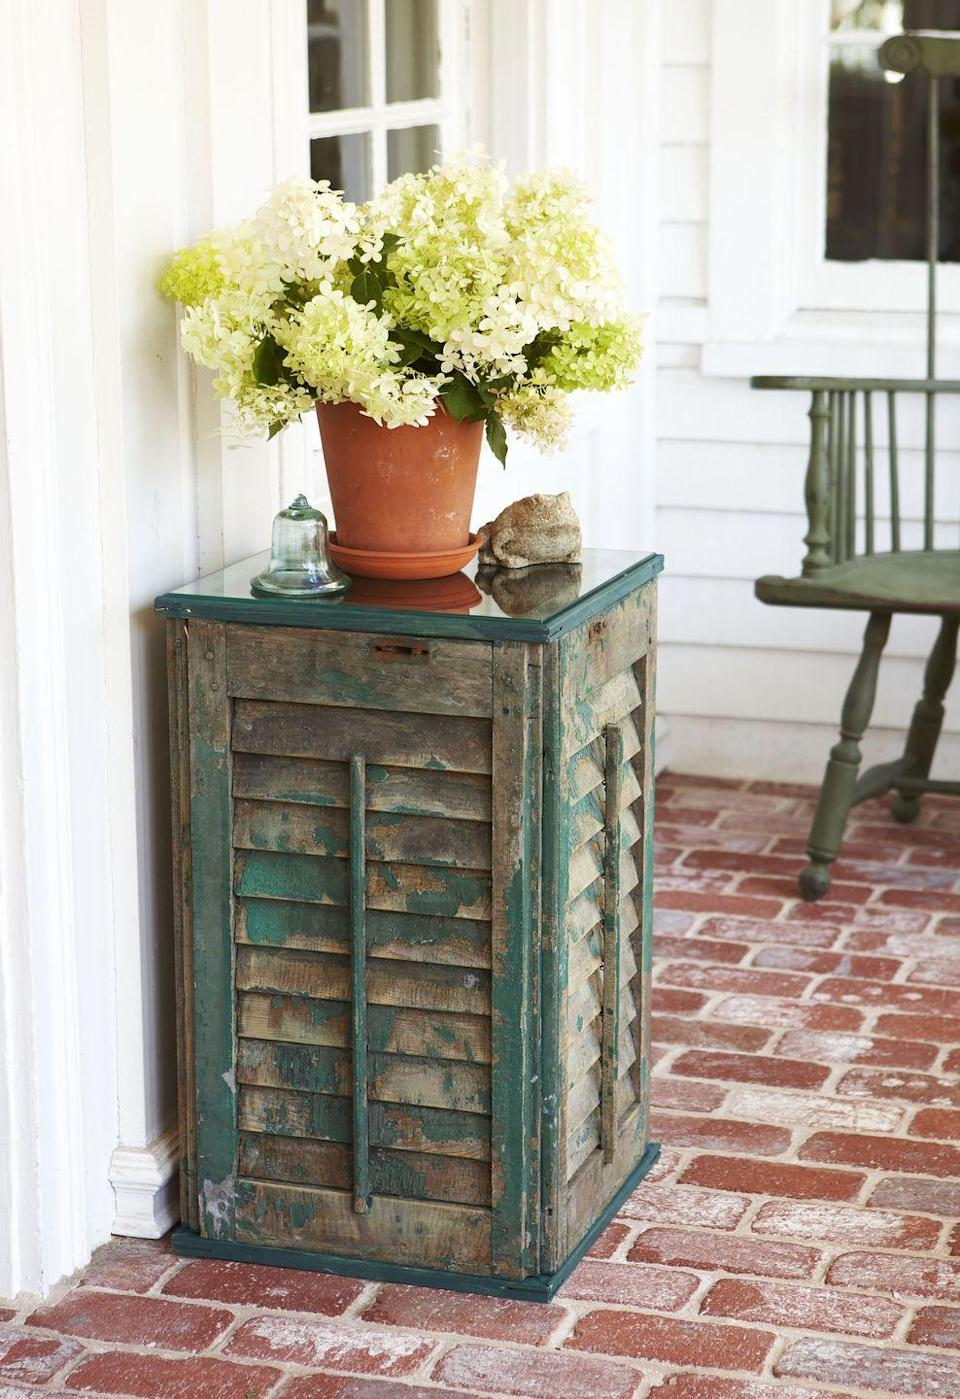 """<p>Skip painting and embrace a weathered finish when making this side table, made out of old farmhouse shutters. </p><p><em><a href=""""https://www.goodhousekeeping.com/home/craft-ideas/how-to/a19239/how-to-build-a-table/"""" rel=""""nofollow noopener"""" target=""""_blank"""" data-ylk=""""slk:Get the tutorial »"""" class=""""link rapid-noclick-resp"""">Get the tutorial »</a></em> </p>"""